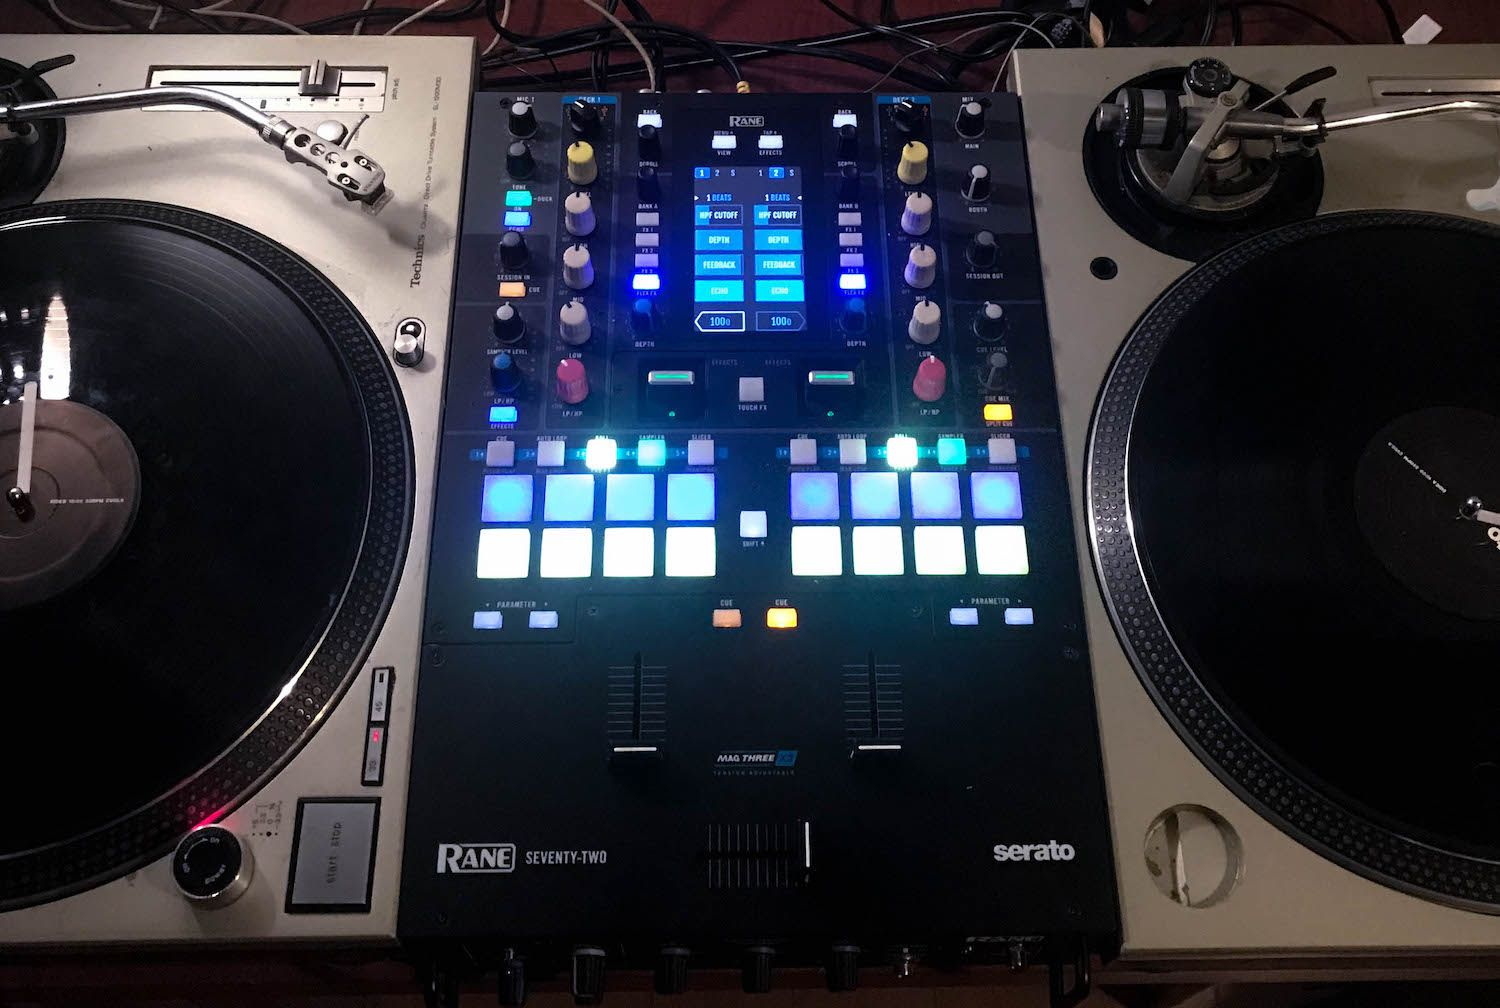 Rane Seventy-Two with turntables